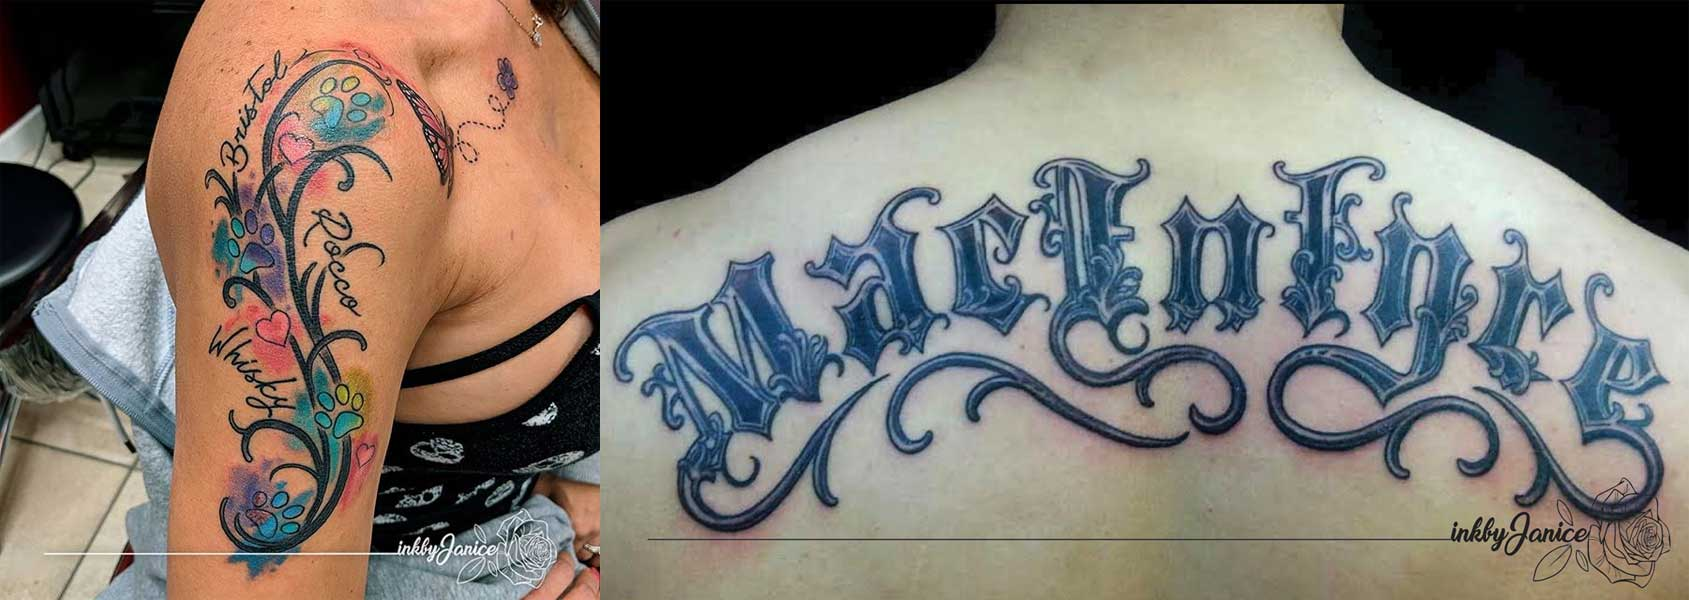 Name Tattoos and You